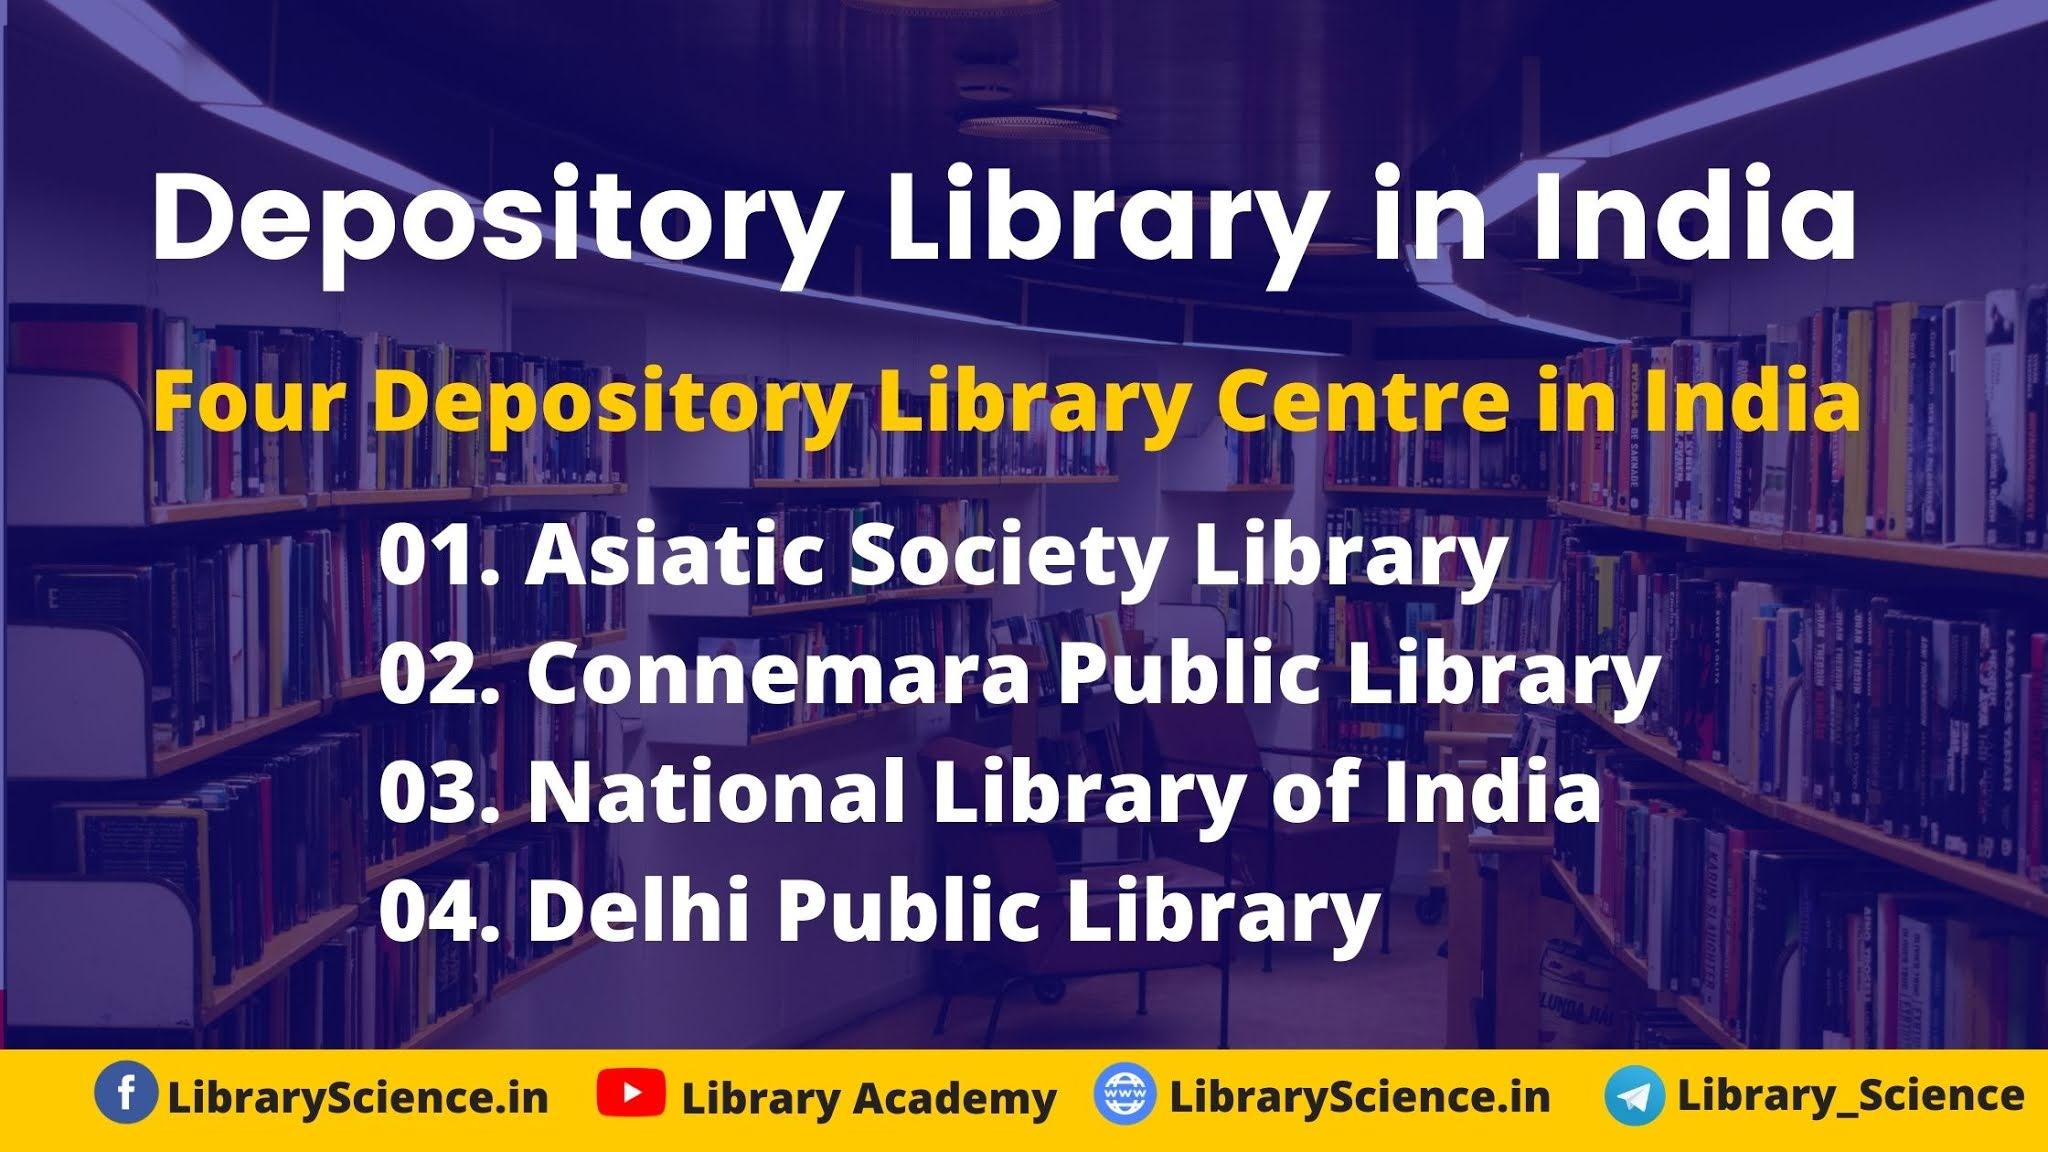 Depository Library in India